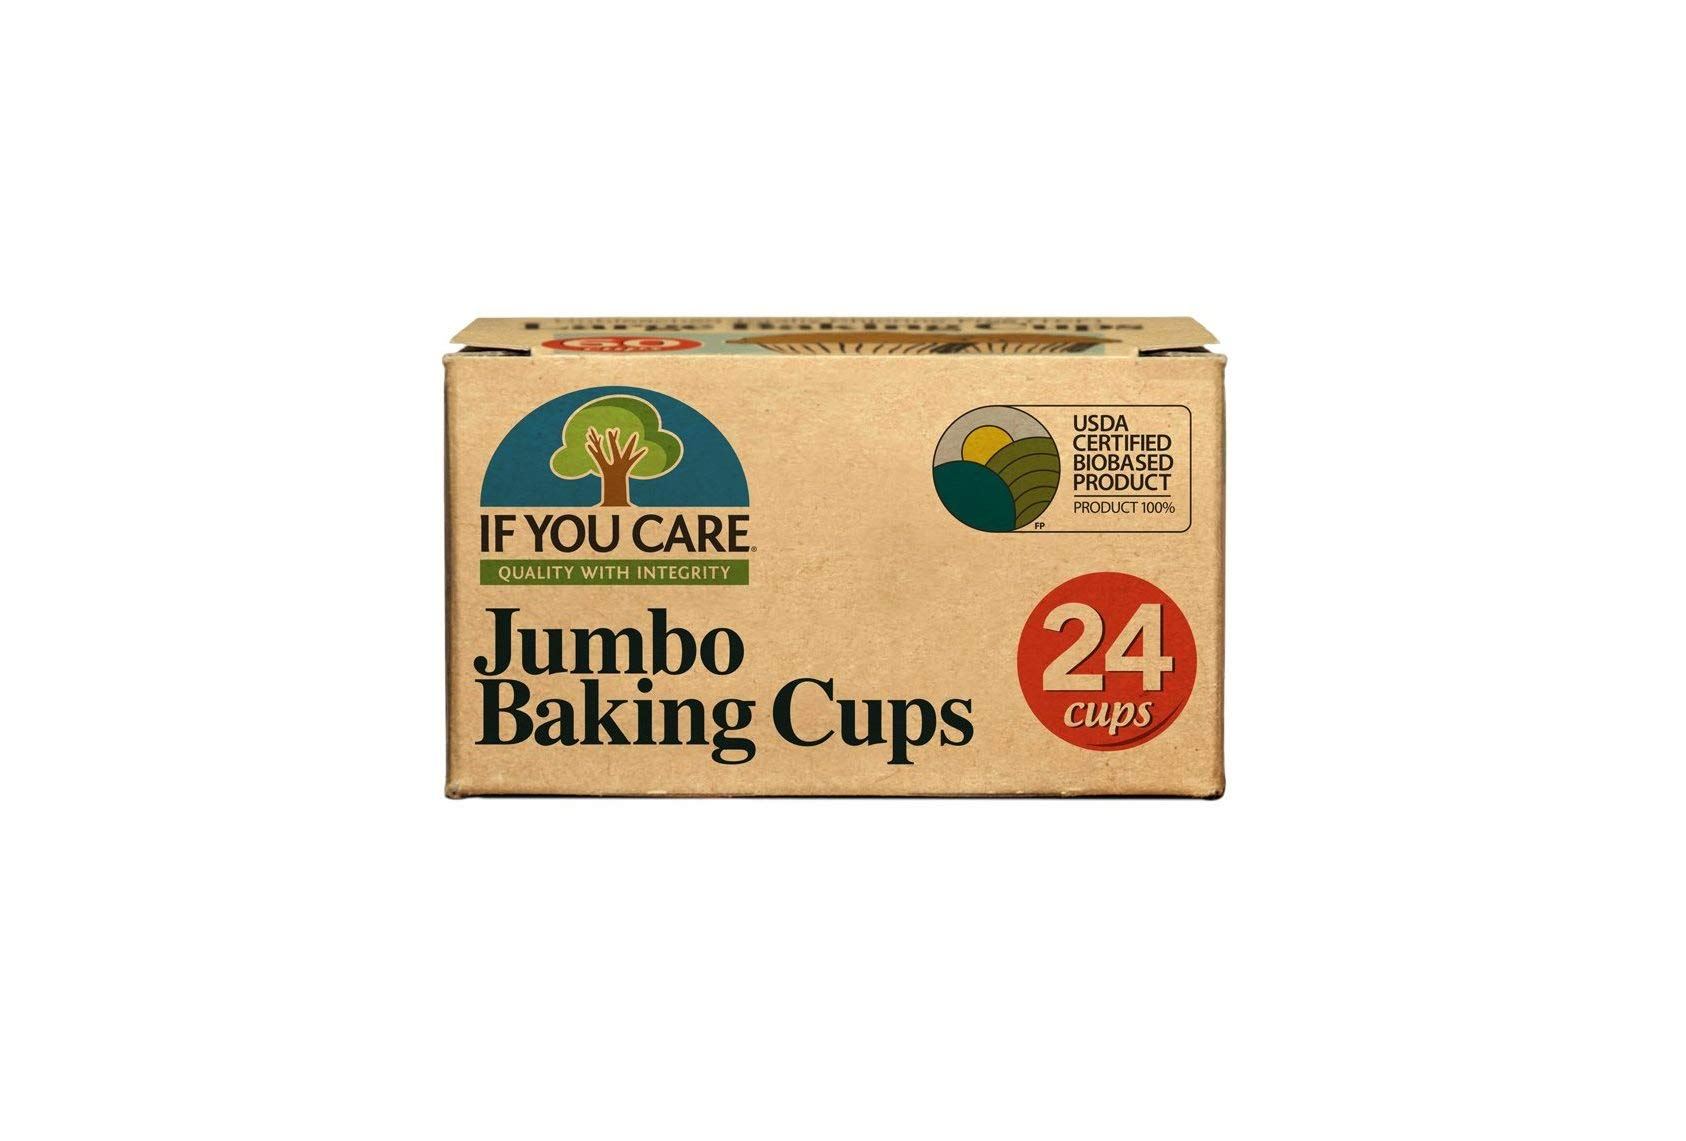 IF YOU CARE Jumbo Baking Cups, 24-Count Packages (Pack of 24)